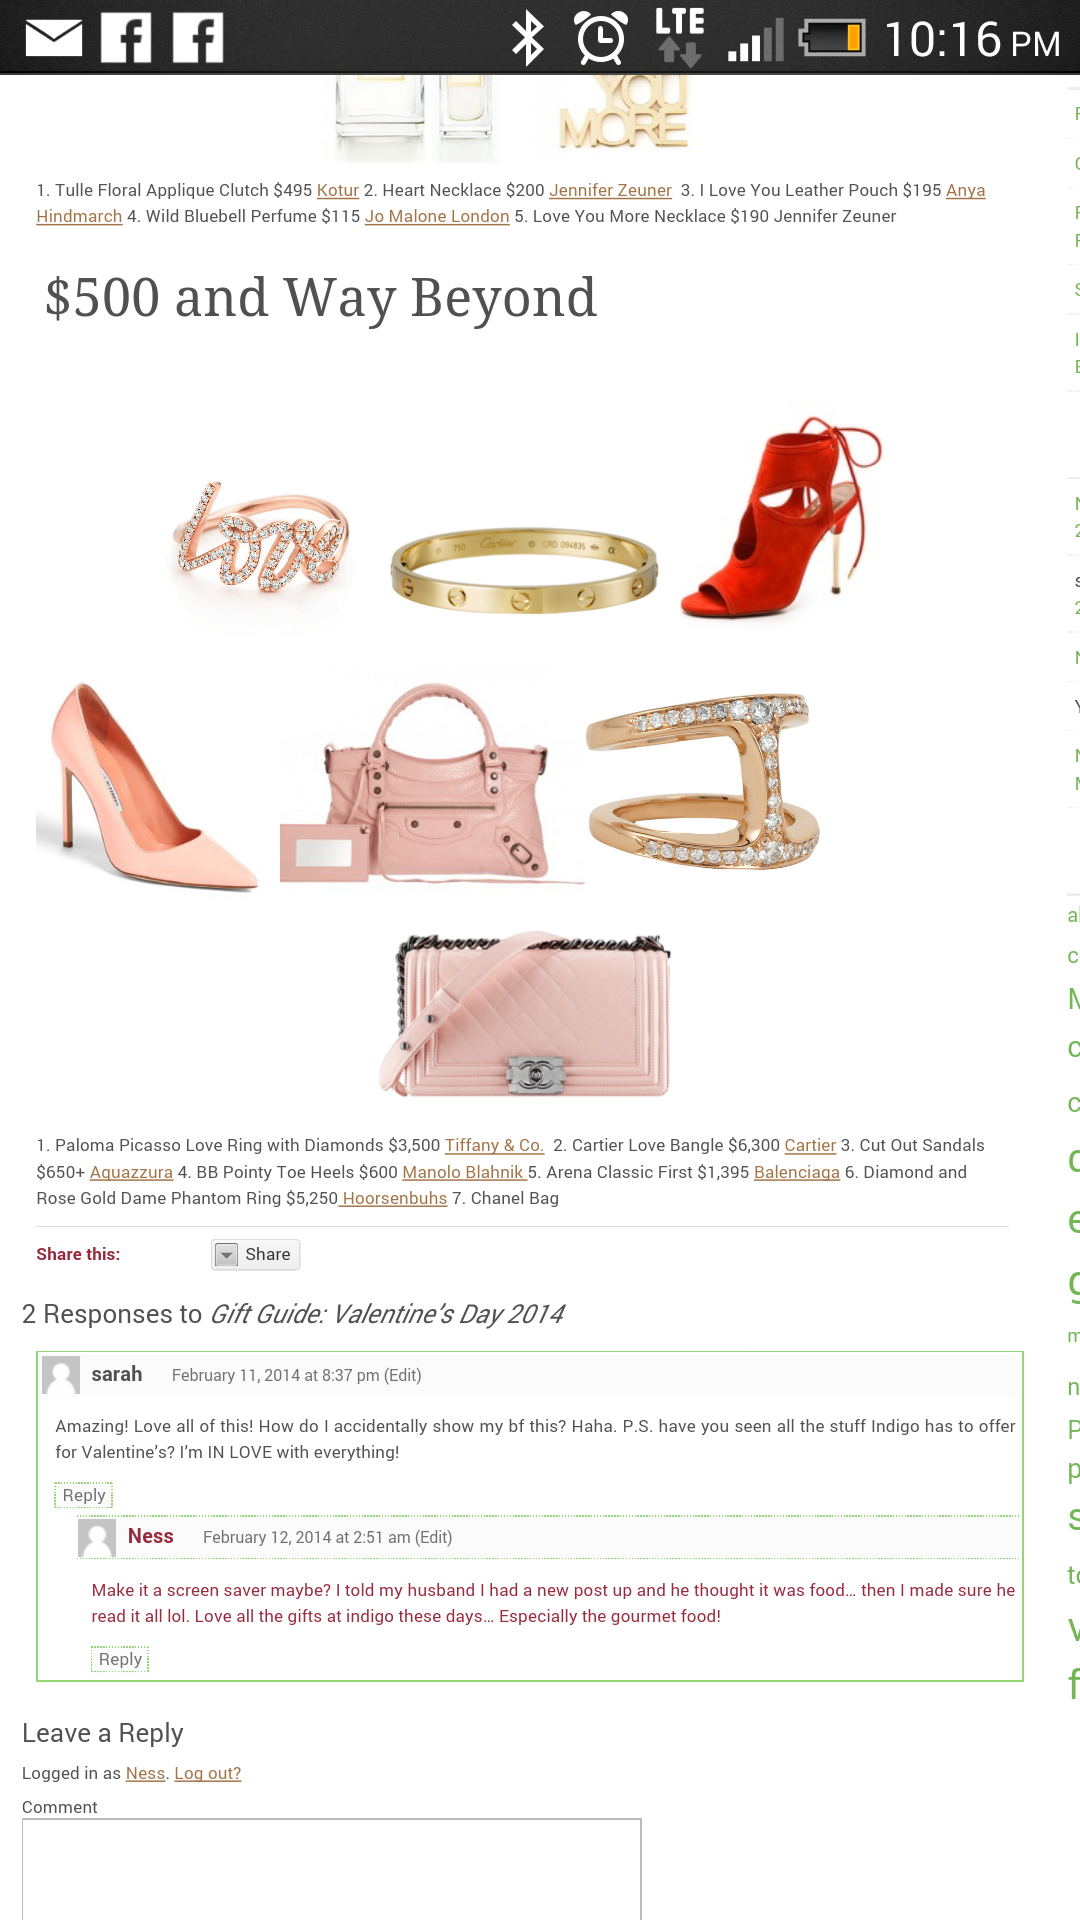 Gift Guide: Valentine's Day 2014